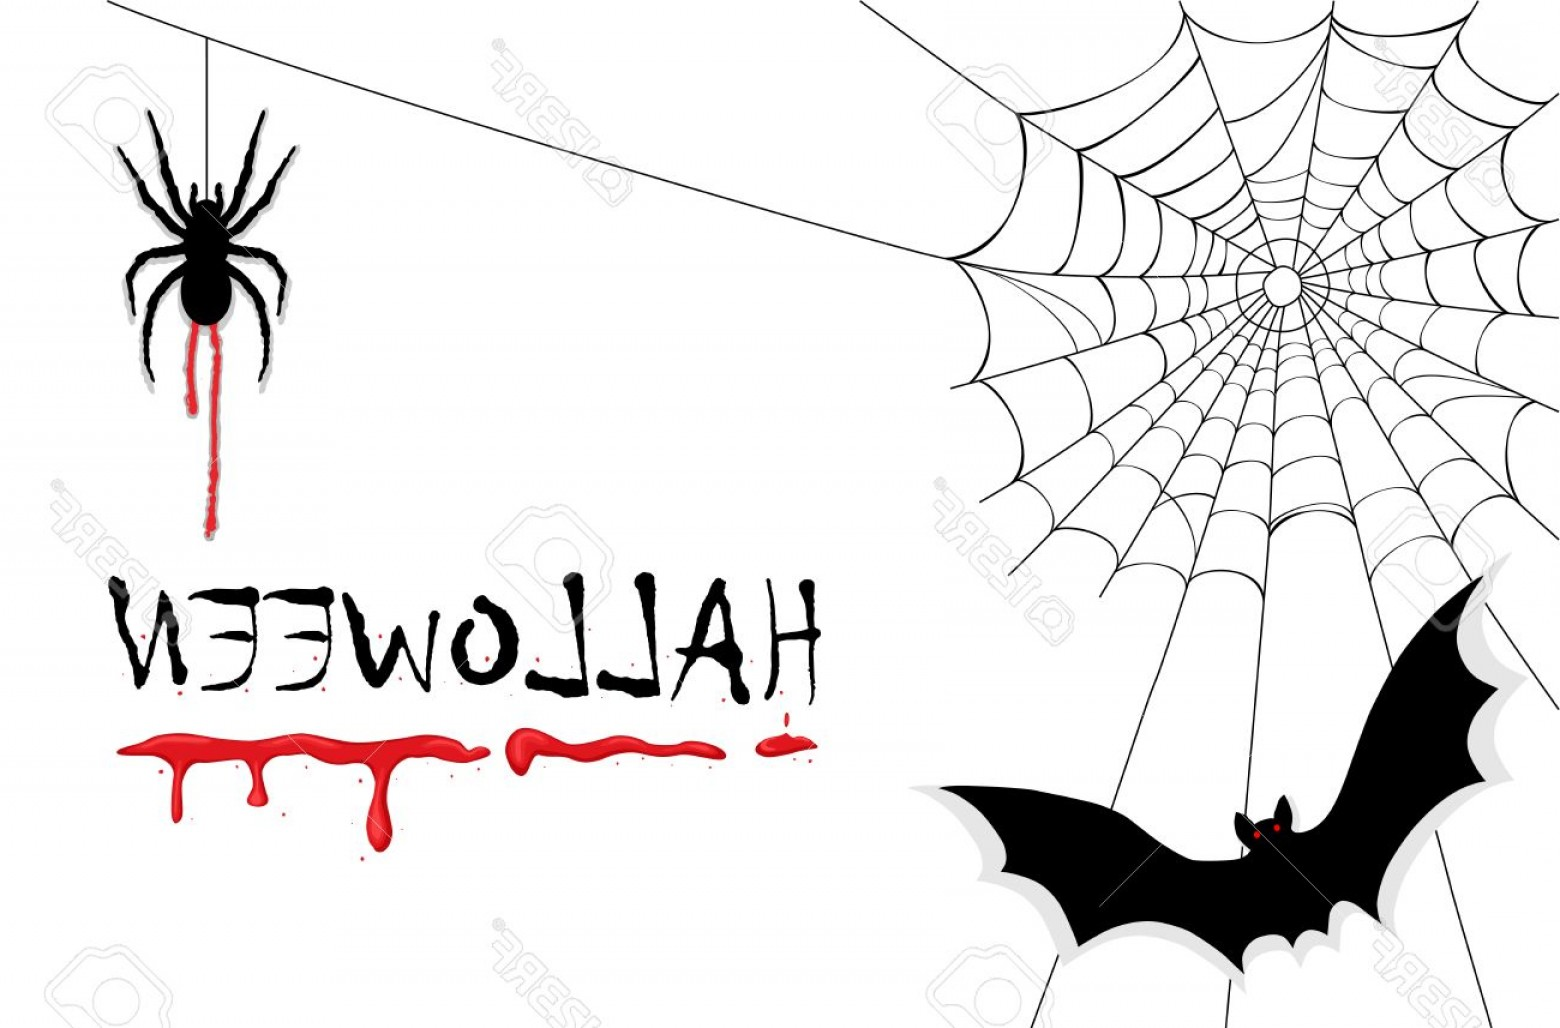 Easy Spider Vector Illustration: Photocelebrating Halloween With Creepy Vampires Bats Spiders And Dripping Blood Ai No Effects No Filter